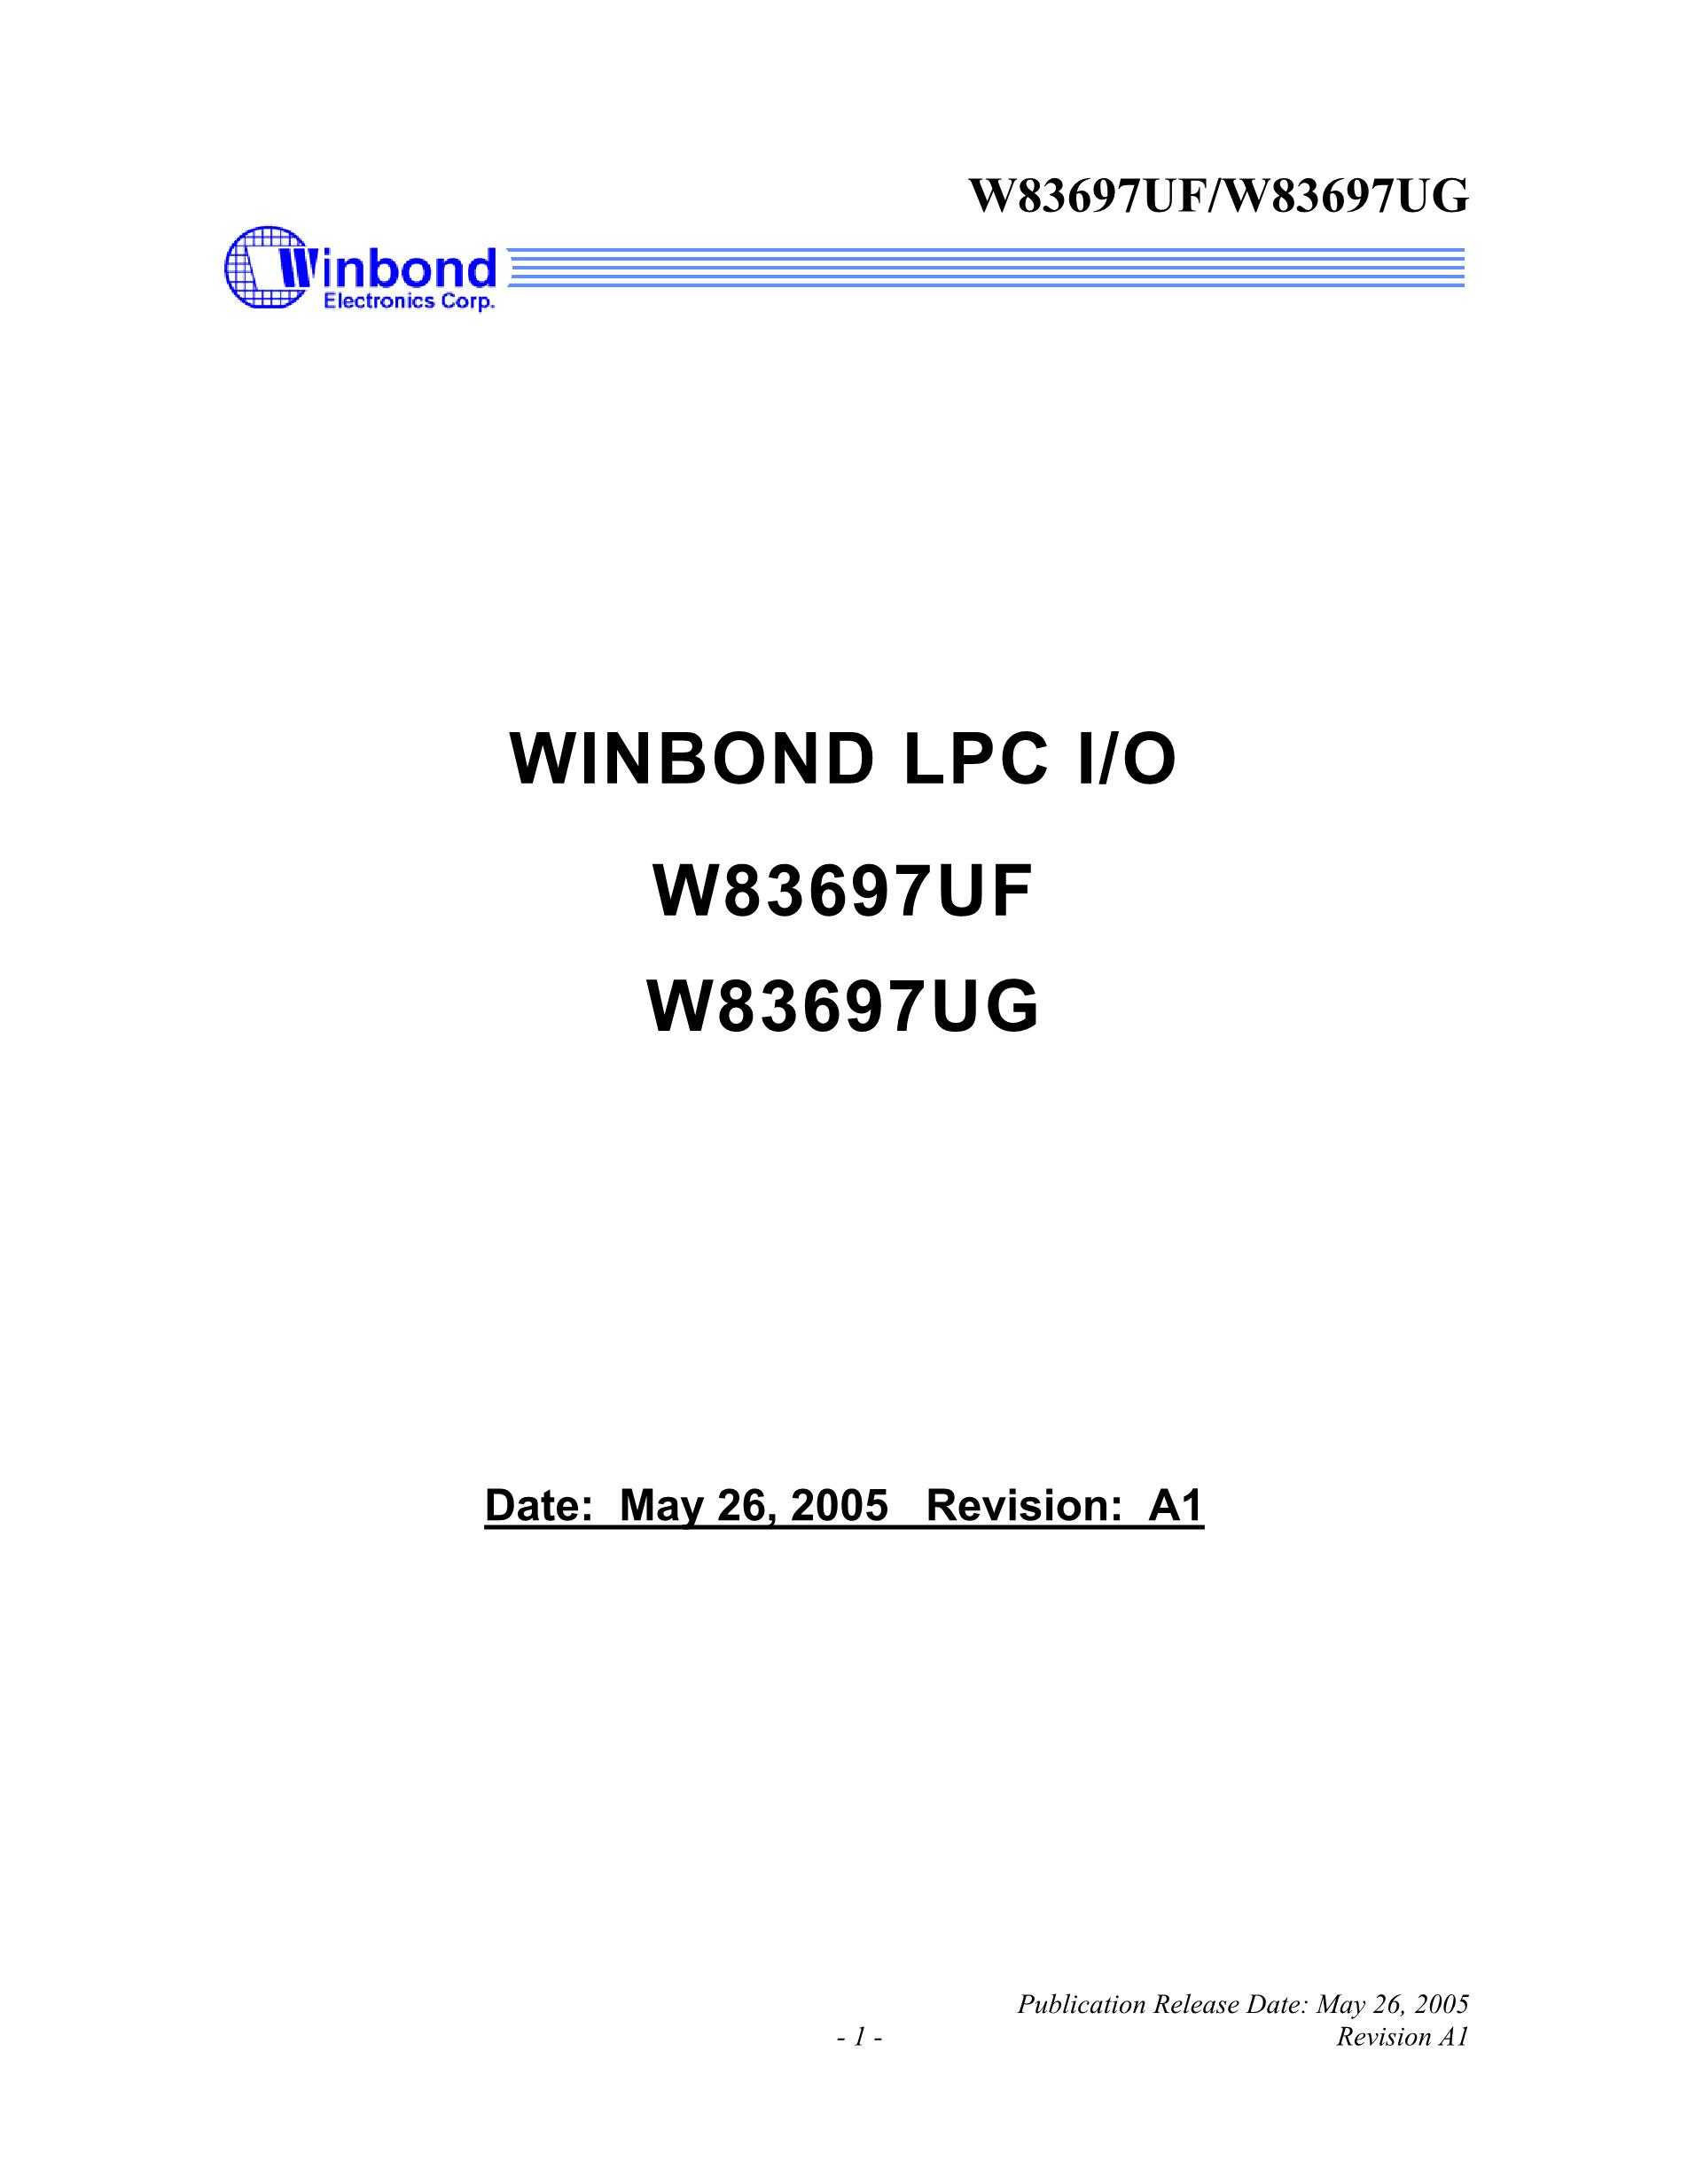 W83627SG-AW's pdf picture 1